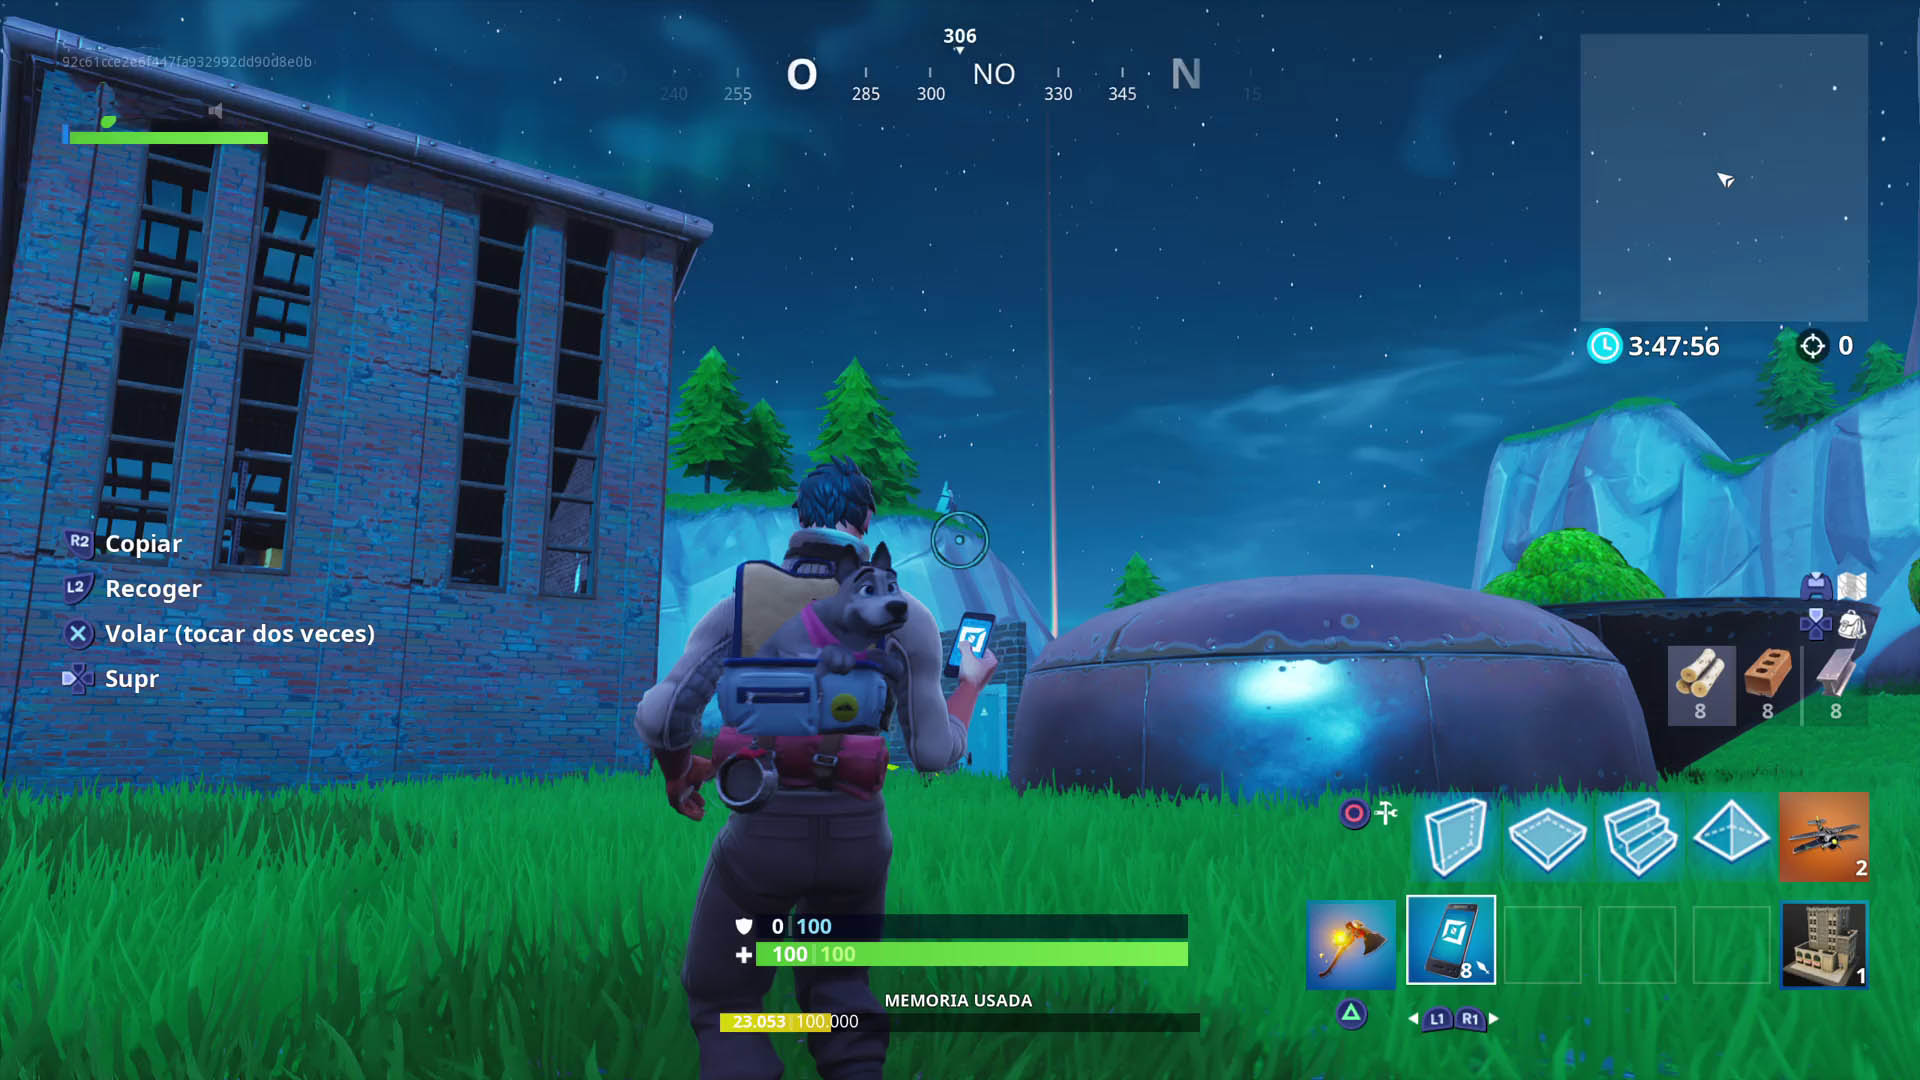 Fortnite 14 Days Of Christmas.Place Units On A Creative Island In Fortnite 14 Days